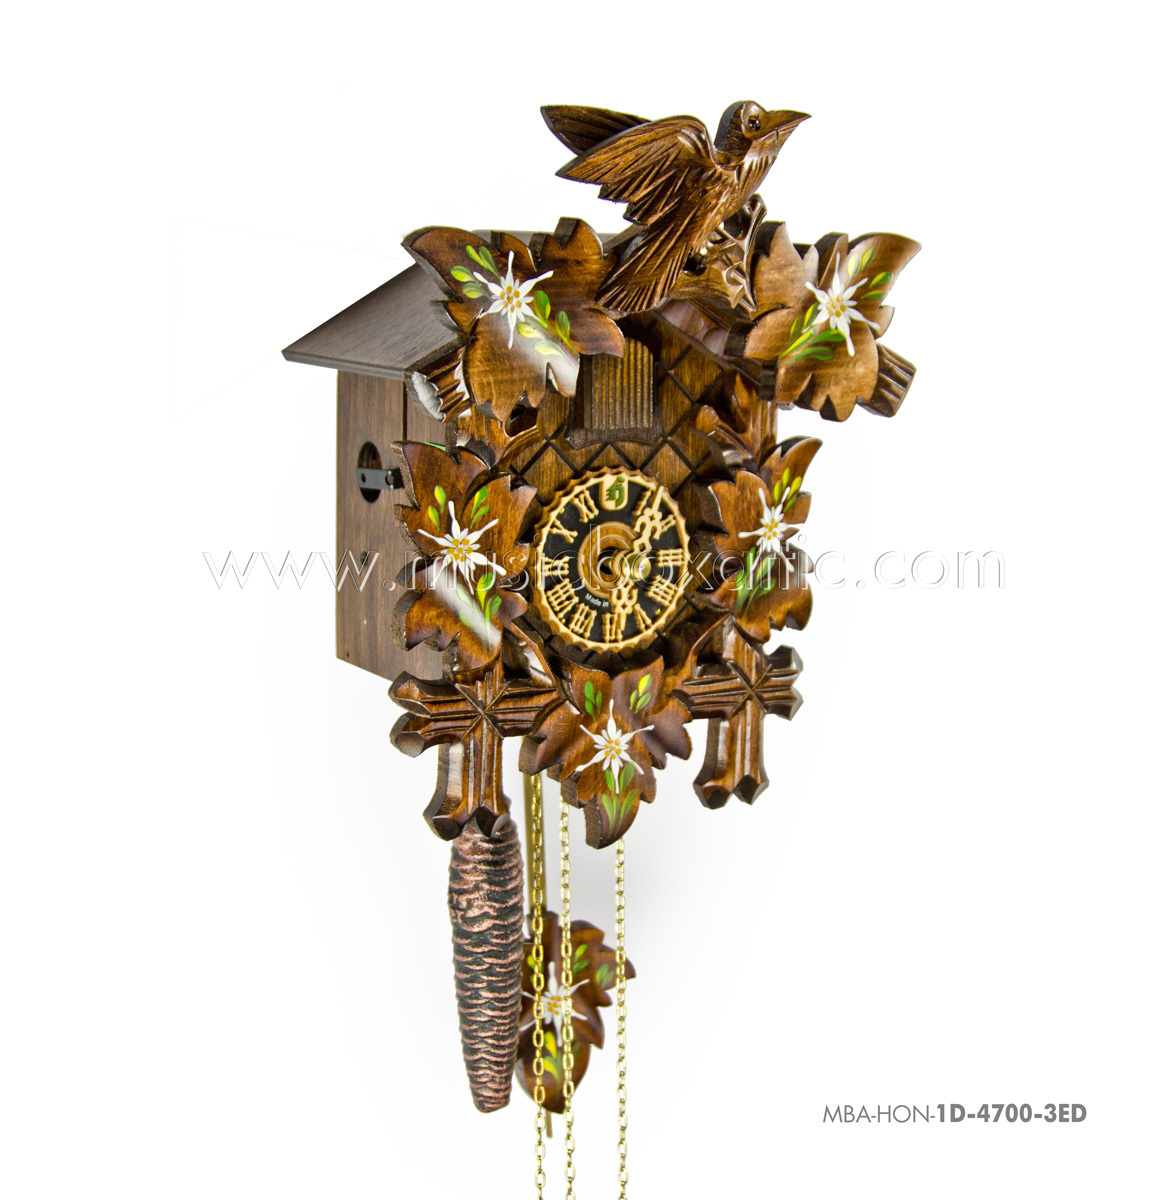 1 Day Black Forest Carved Cuckoo Clock with Hand Painted Edelweiss By Hones